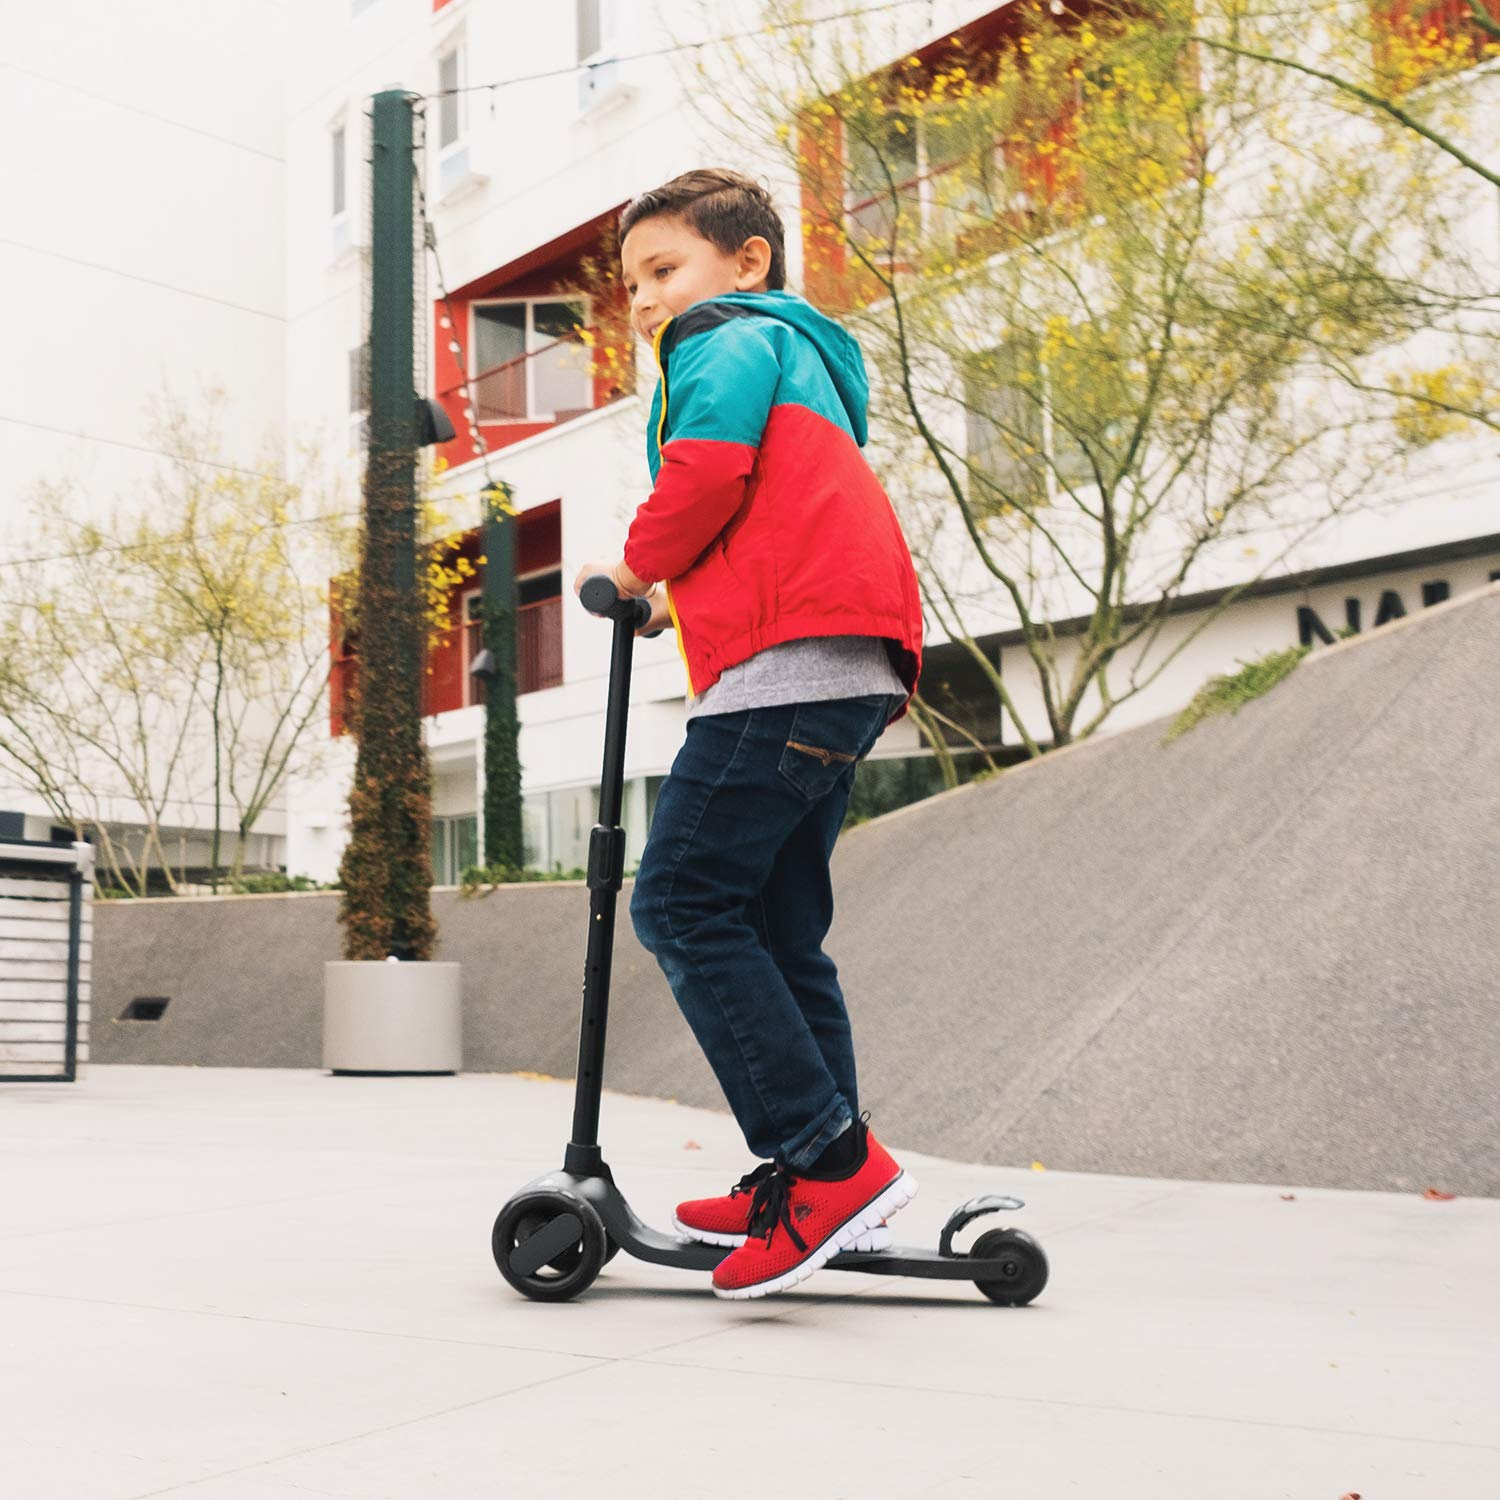 6KU 3 Wheels Kick Scooter for Kids and Toddlers Girls /& Boys Adjustable Height Learn to Steer with Extra-Wide PU LED Flashing Wheels for Children from 2 to 5 Year-Old.